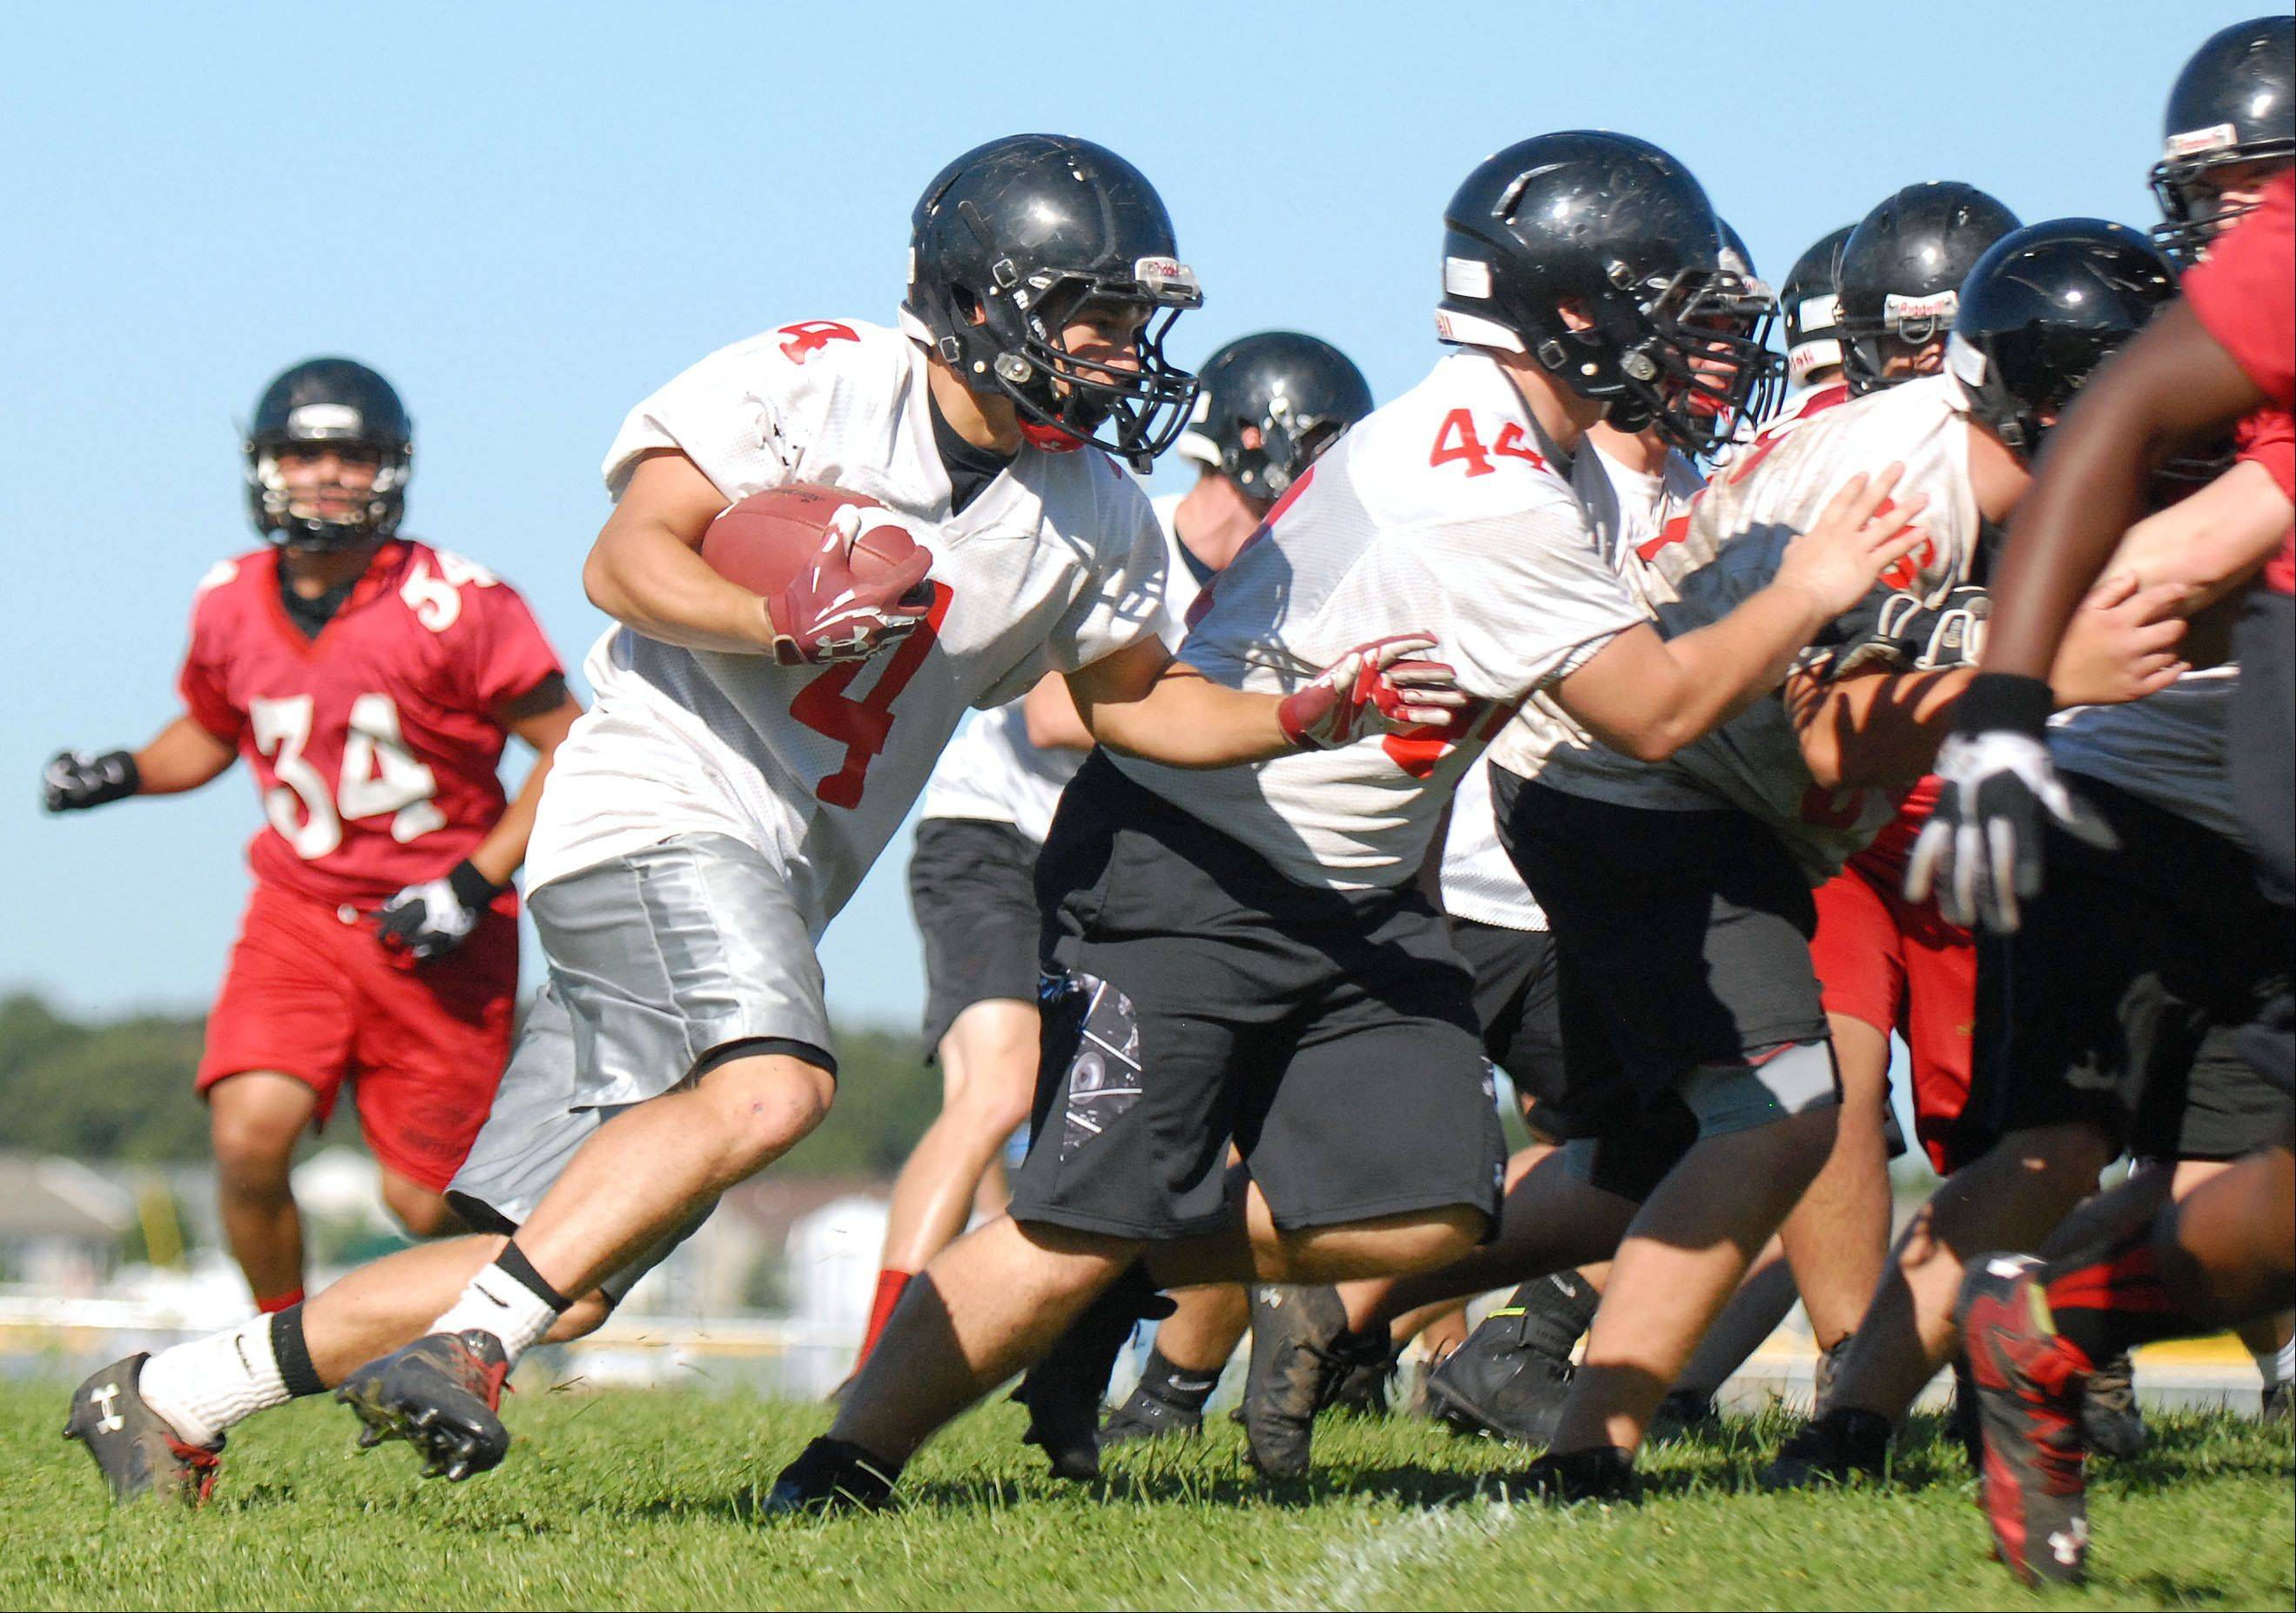 Senior Mitchell Kawell takes off with the ball during the first day of practice for Huntley High School varsity football on Wednesday, August 14.